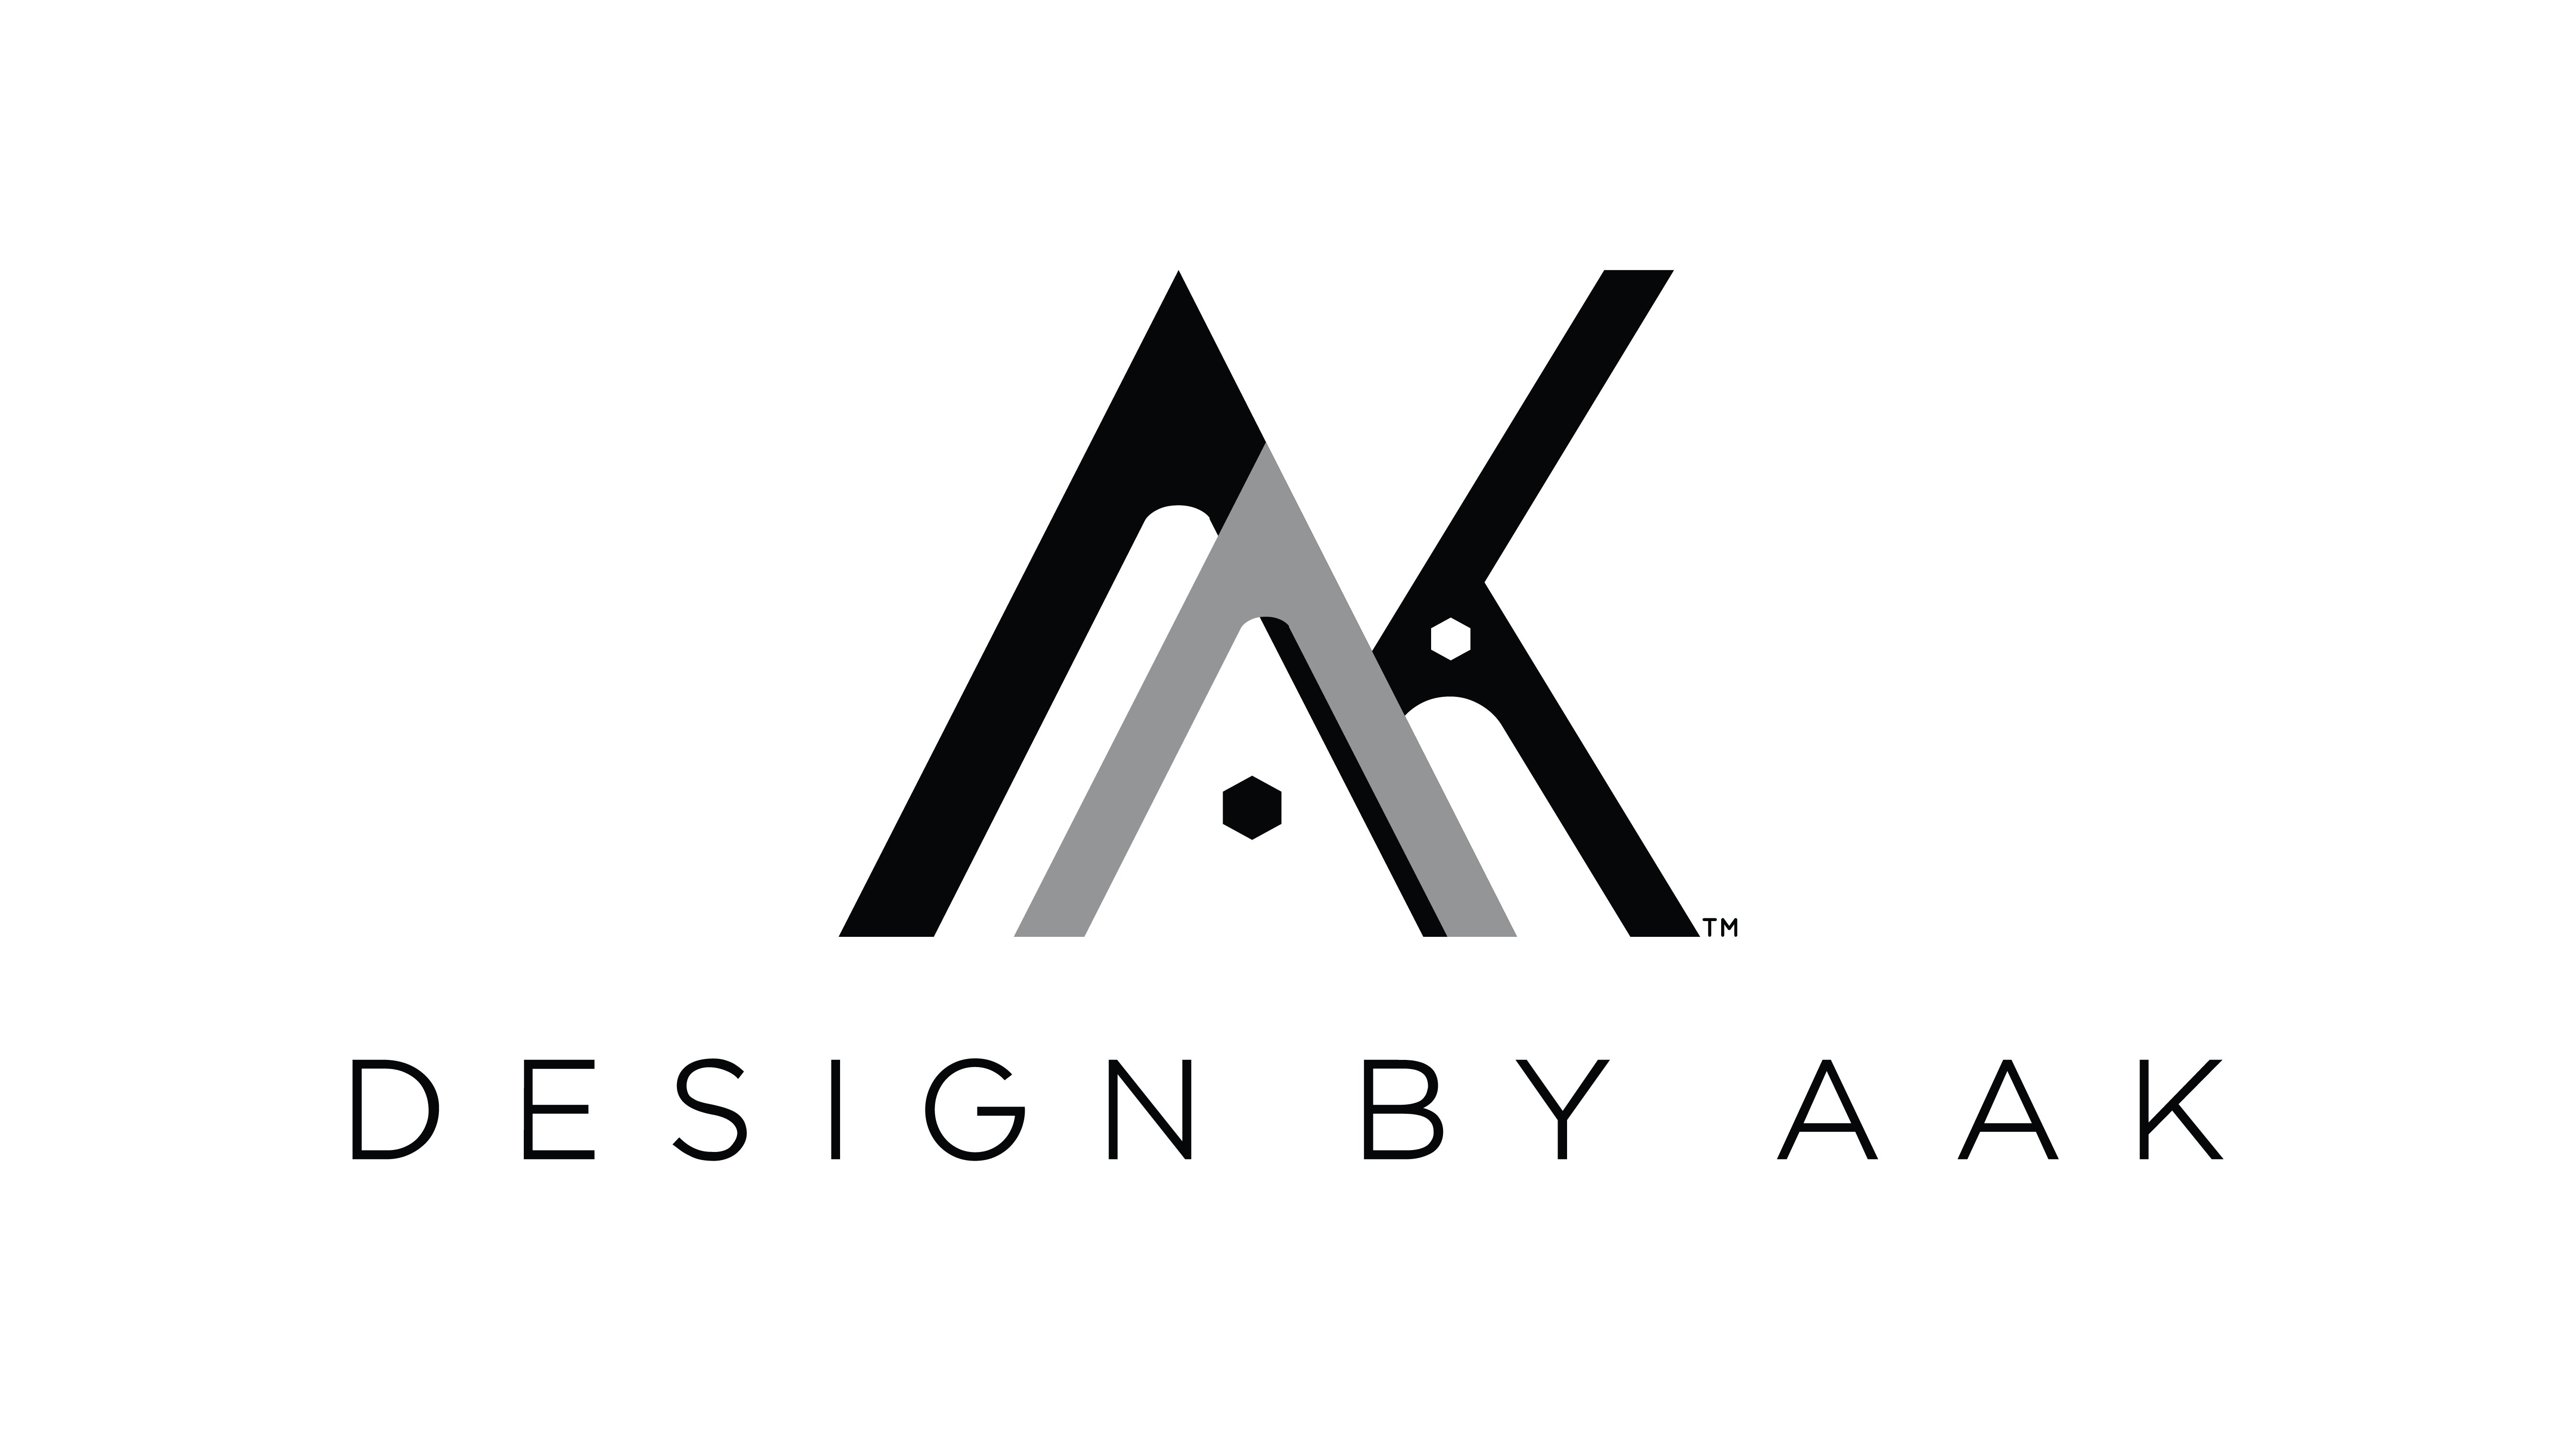 Design By AAK